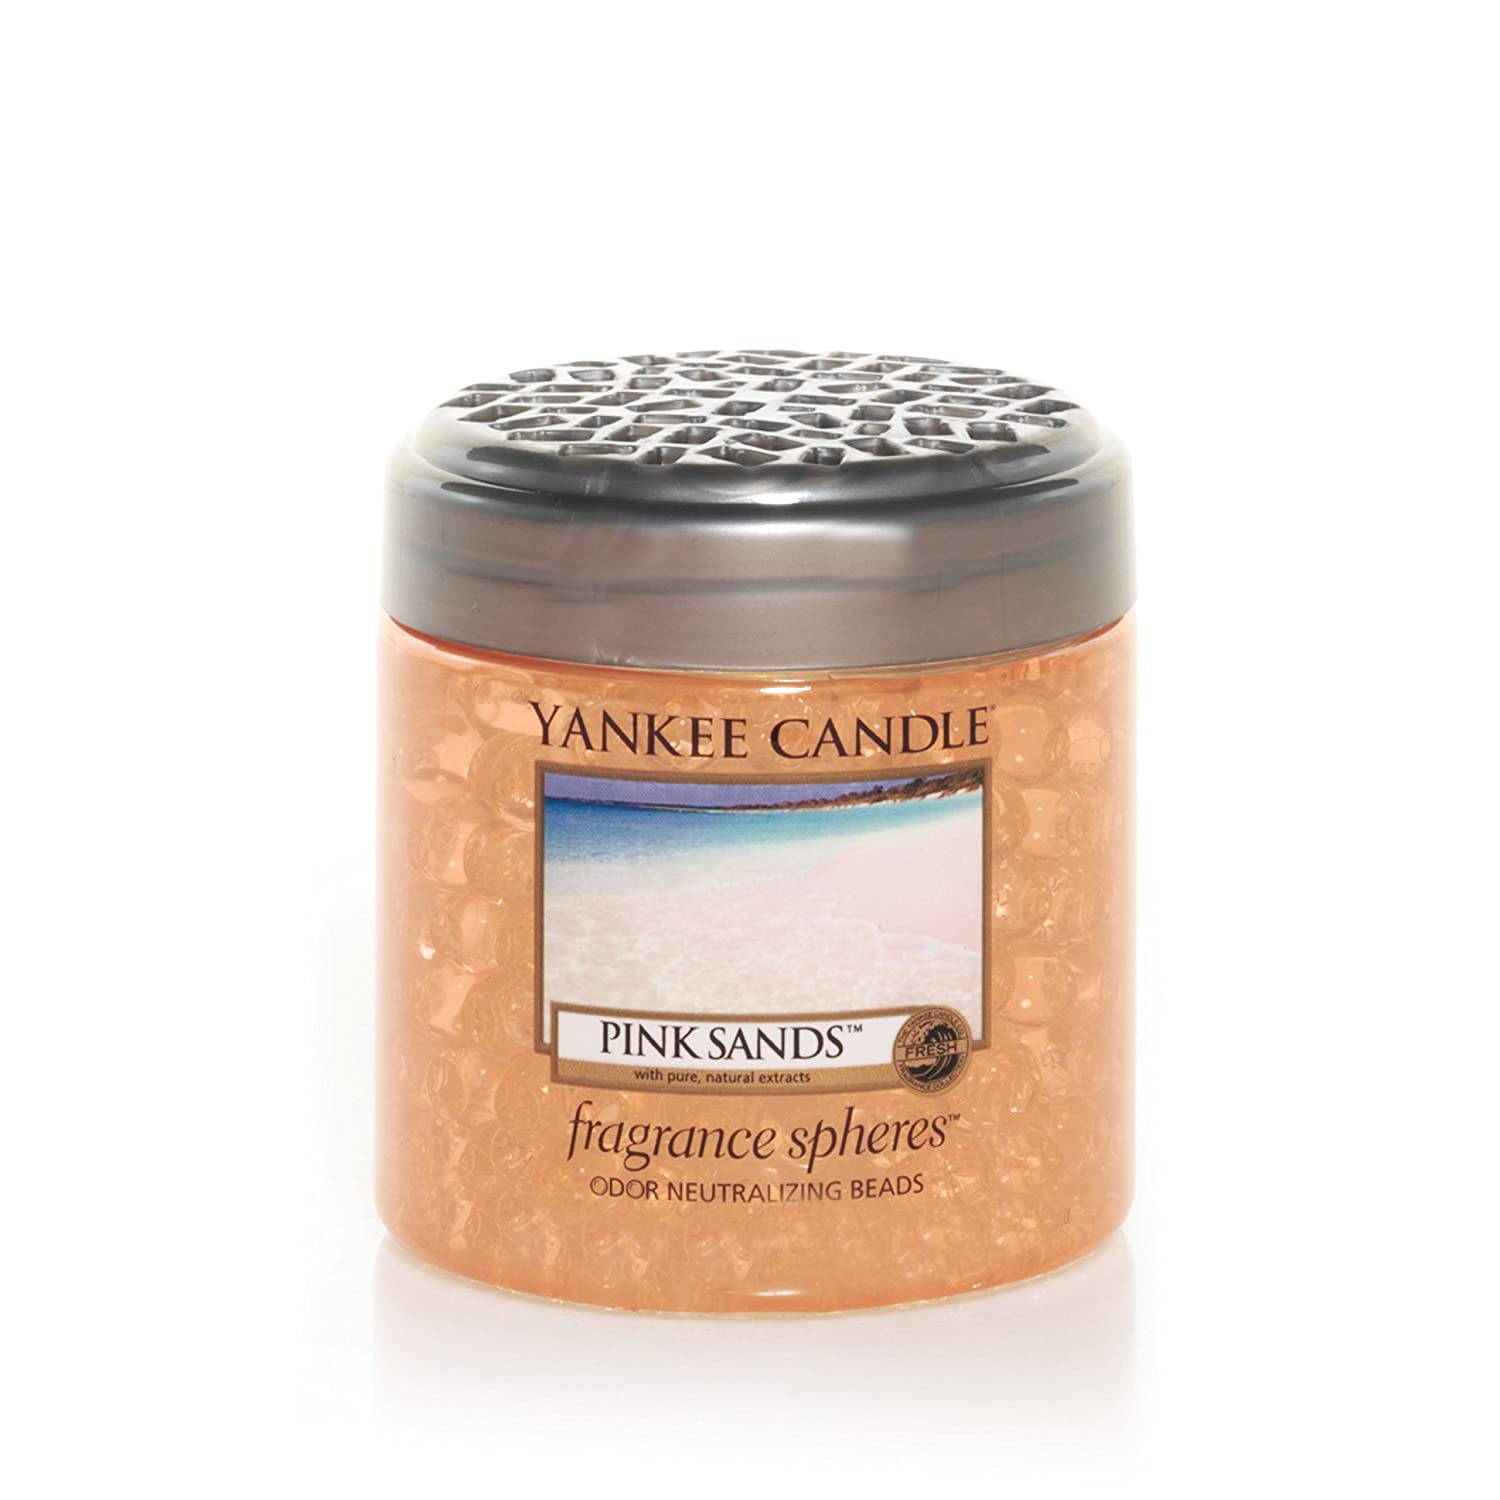 Yankee Candle Sands Fragrance Spheres, Pink